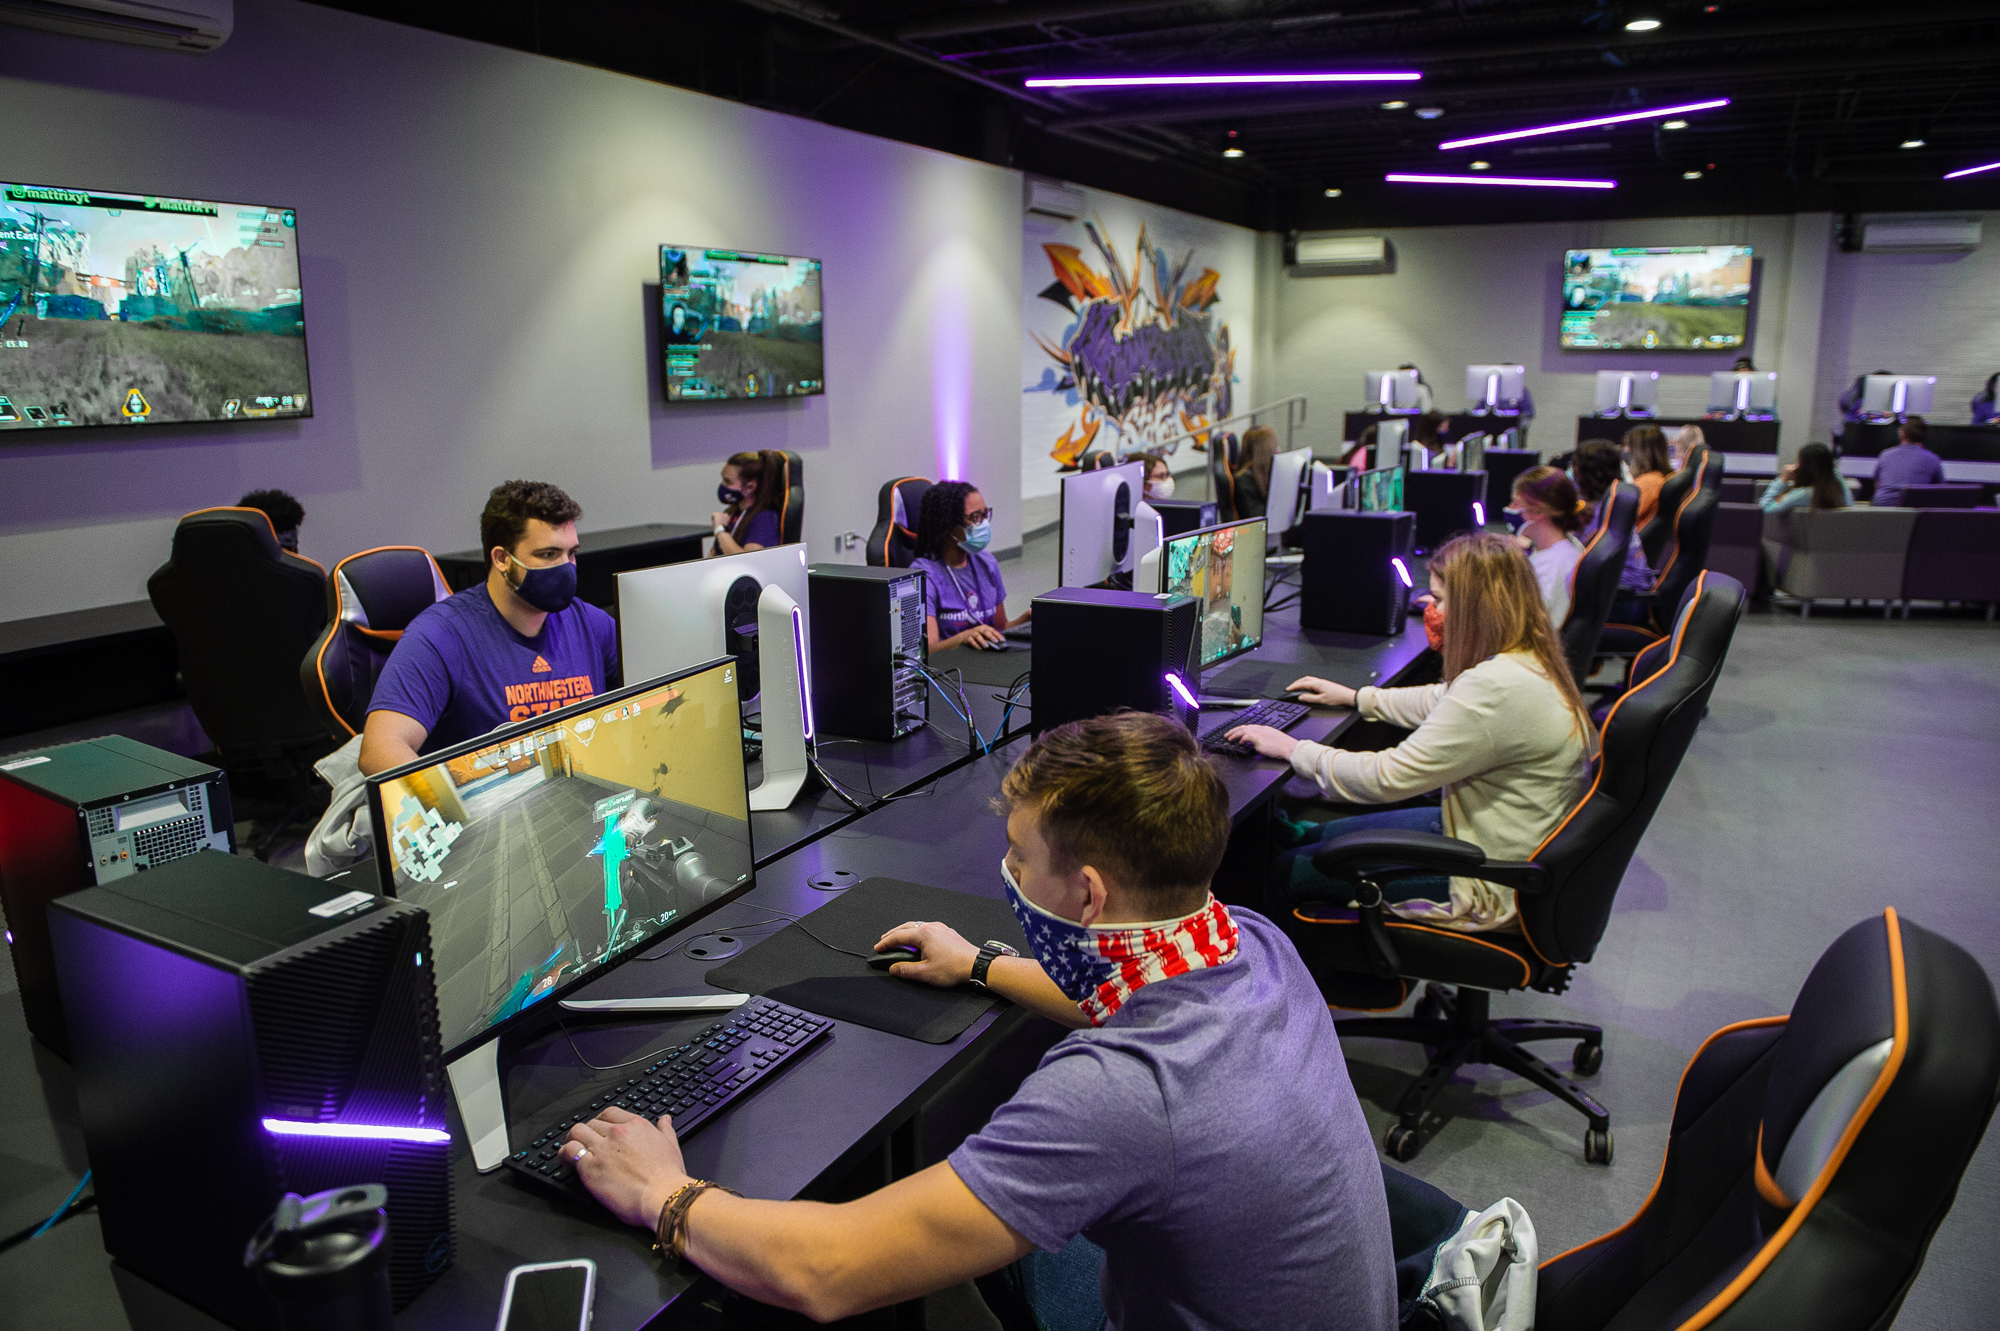 Students play a first-person shooter game at desktop PCs in the NSU Esports Venue.